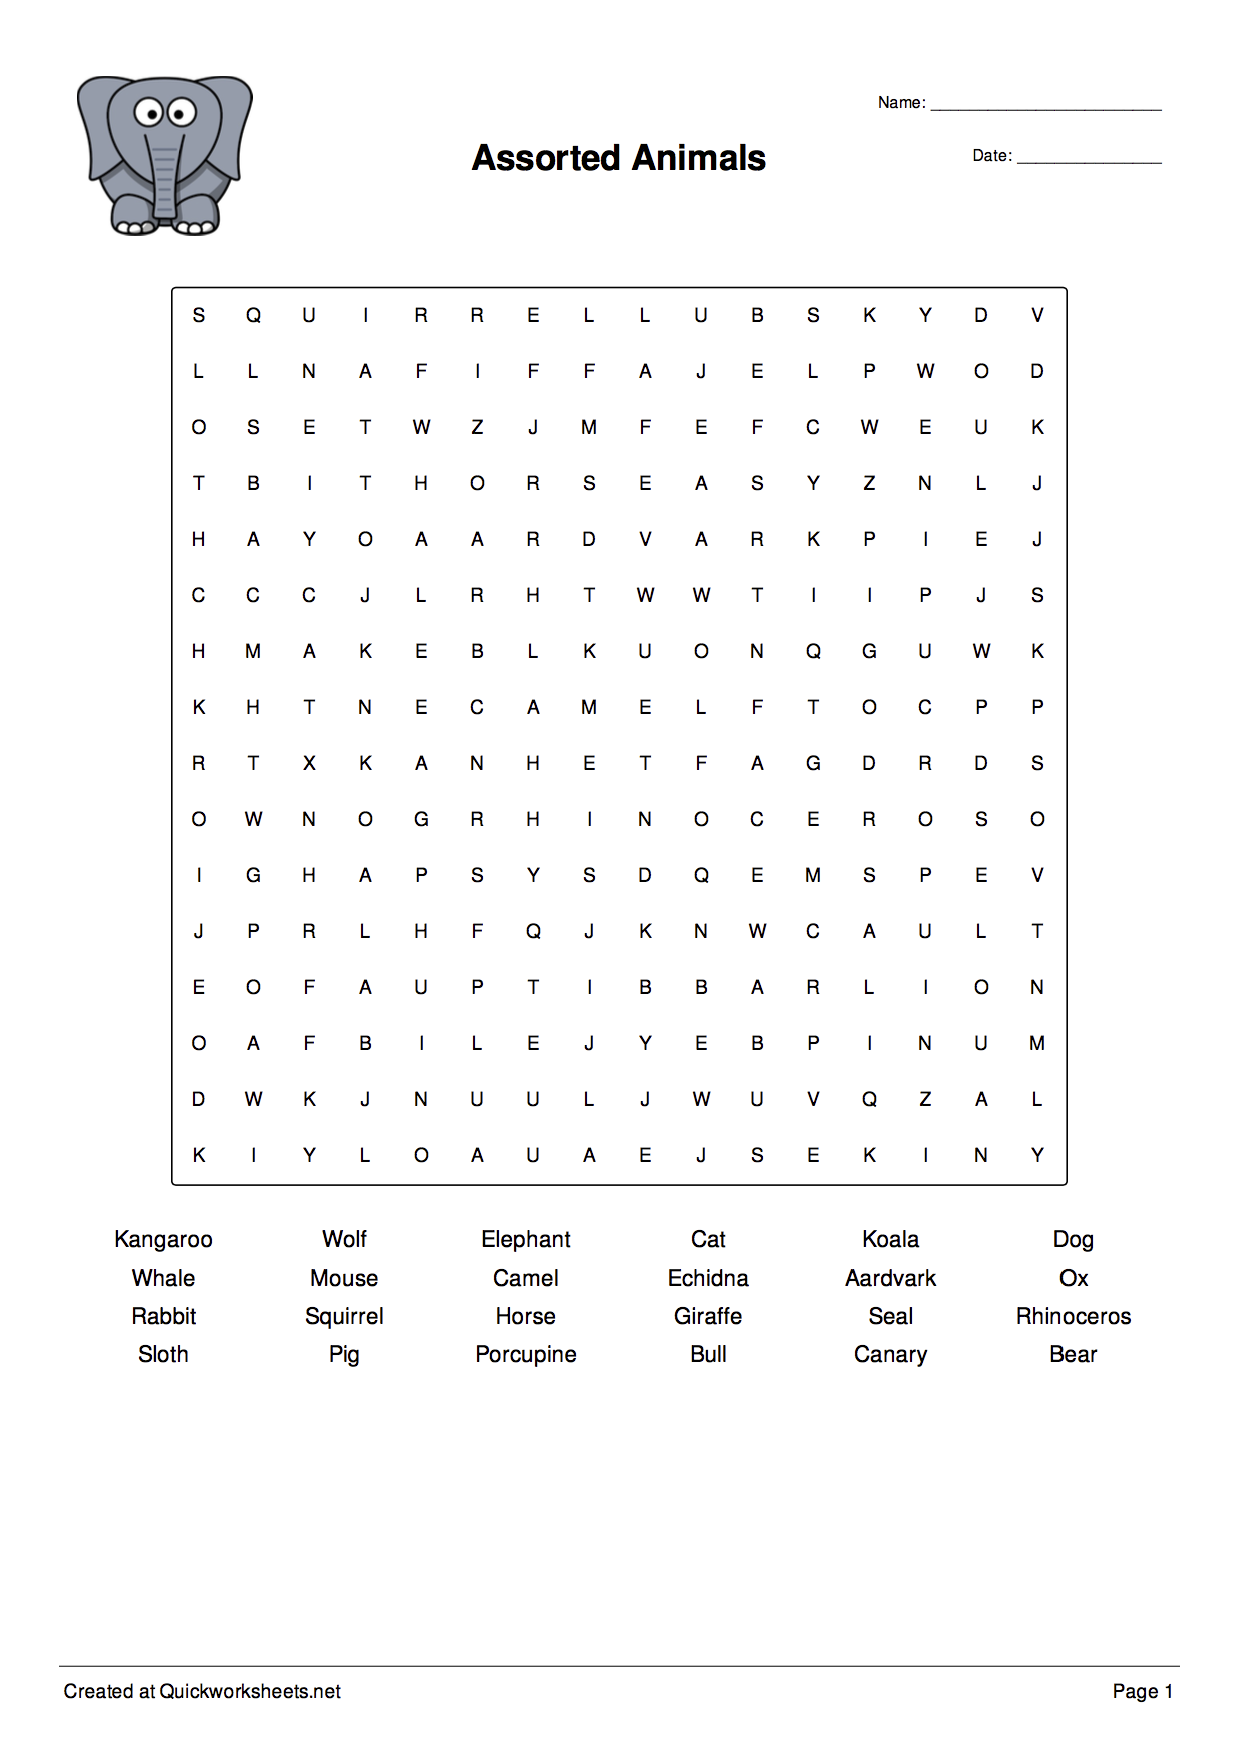 Worksheets Create Your Own Spelling Worksheets word scramble wordsearch crossword matching pairs and other worksheet maker thumbnail